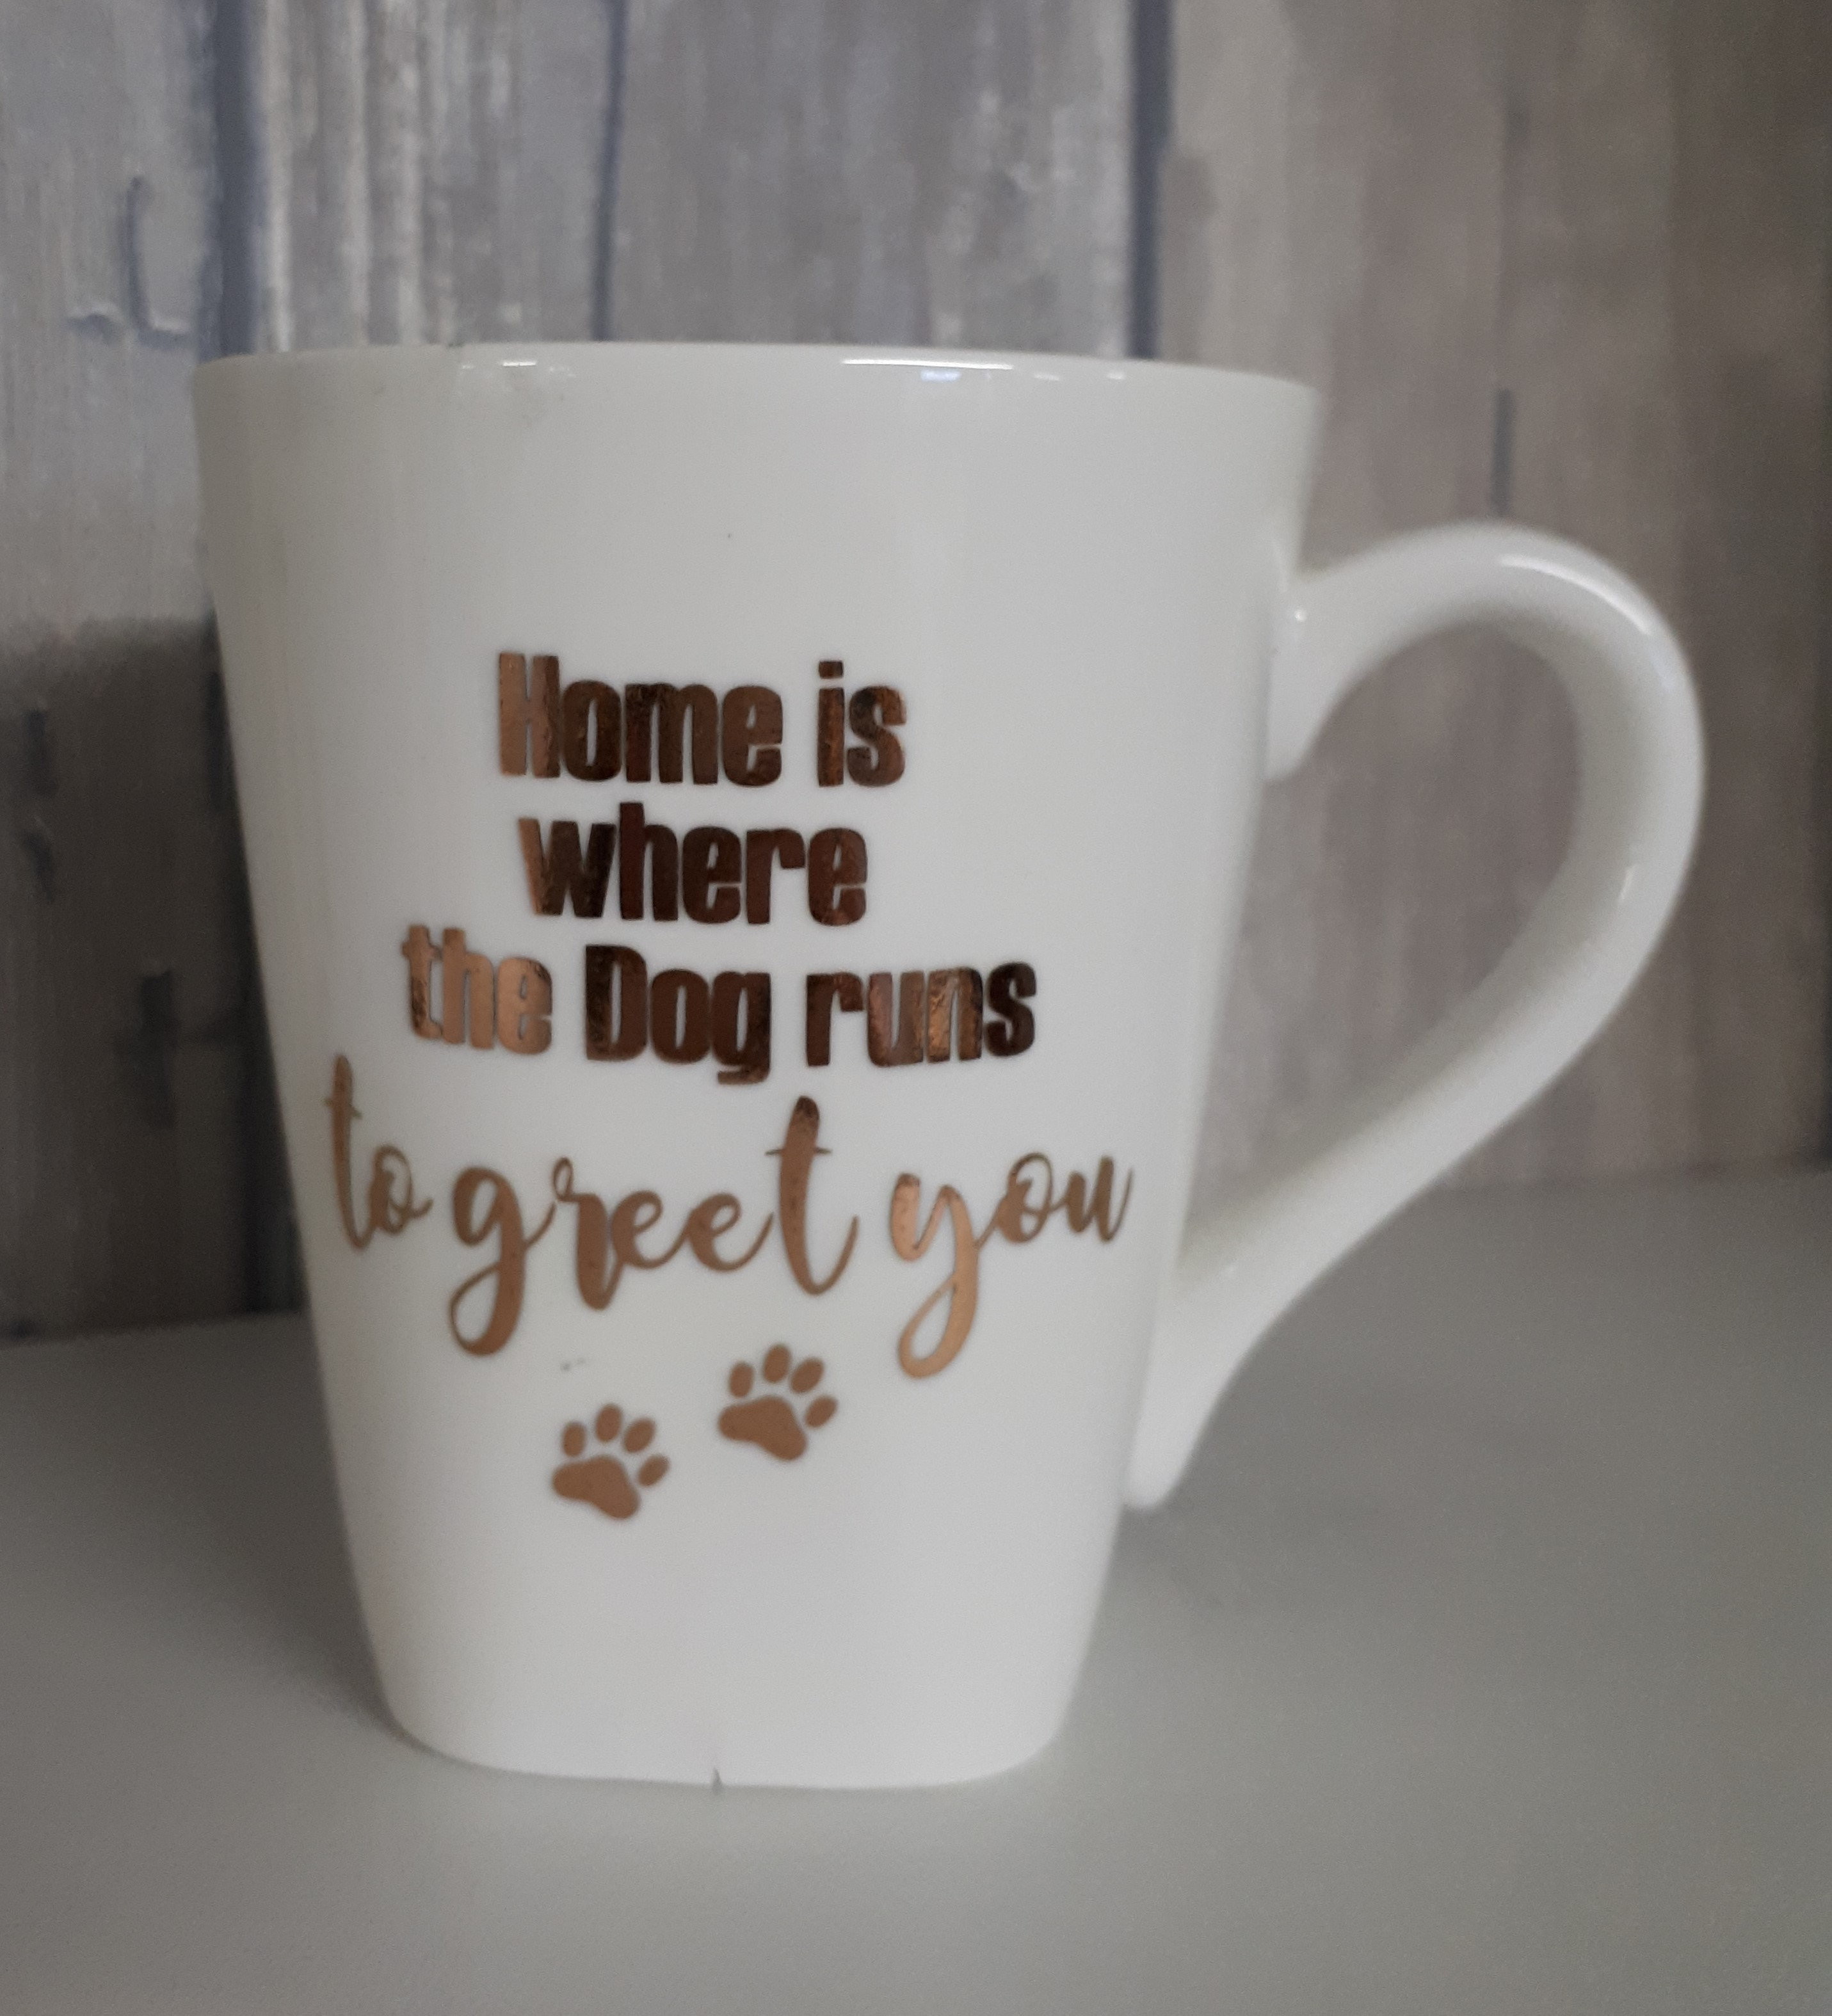 Beker....Home is where the dog runs to greet you